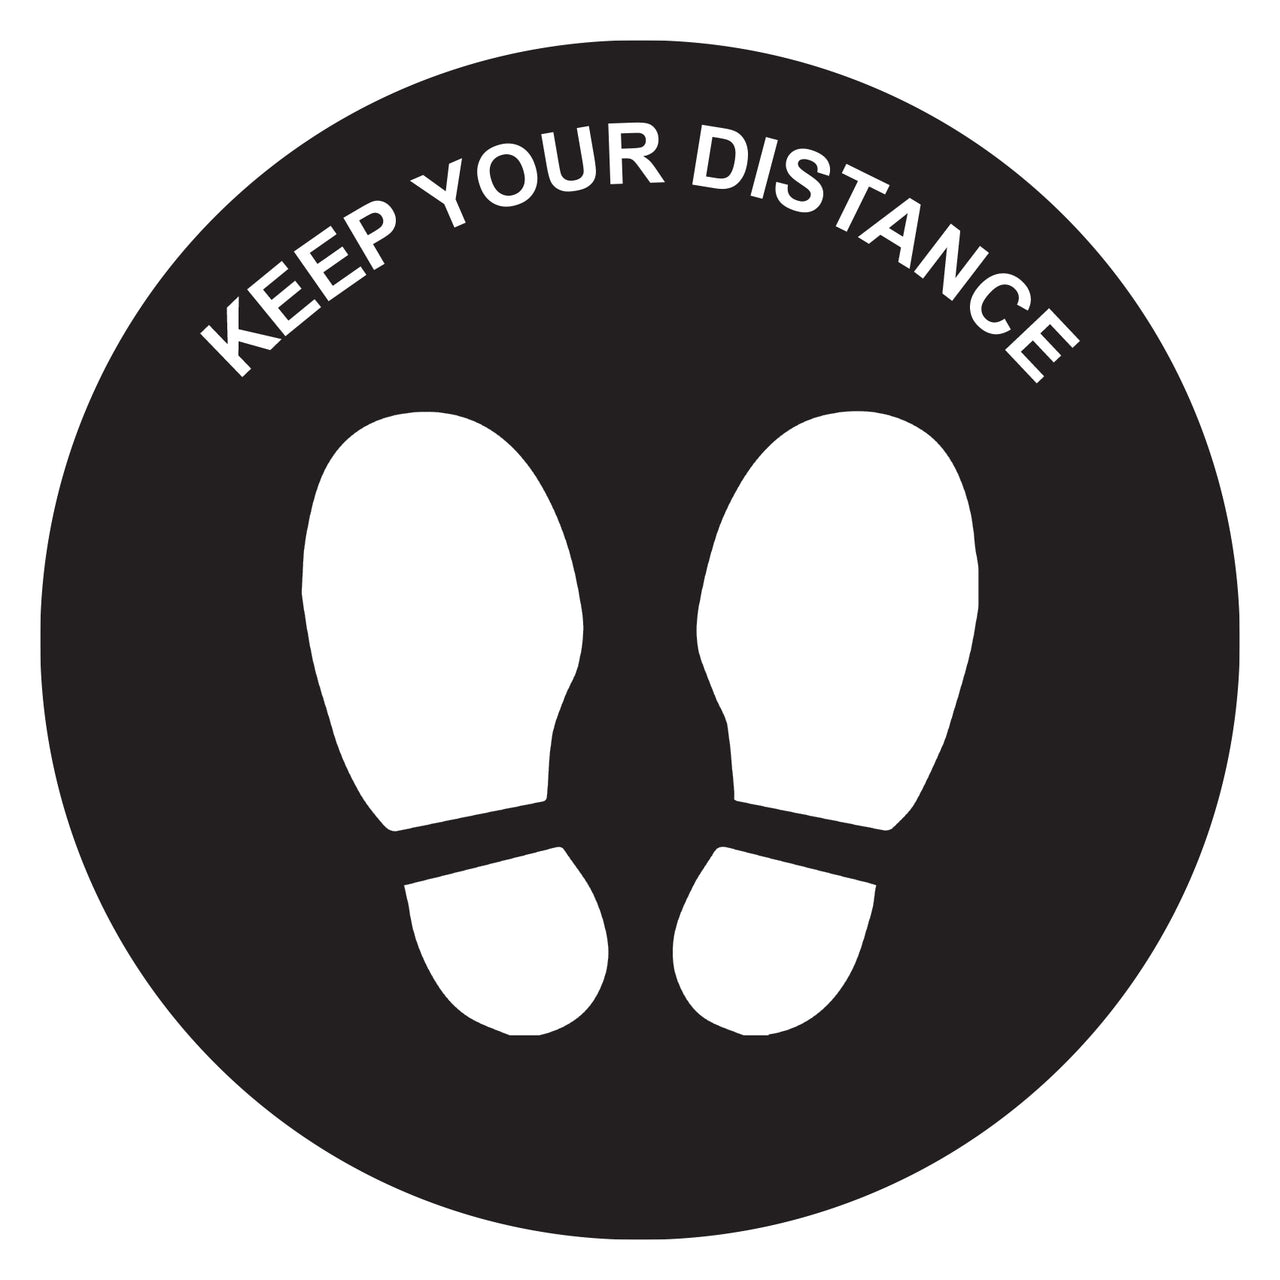 Keep Your Dist Anti-slip Floor Sticker 250mmD Pkt of 10 TR9902